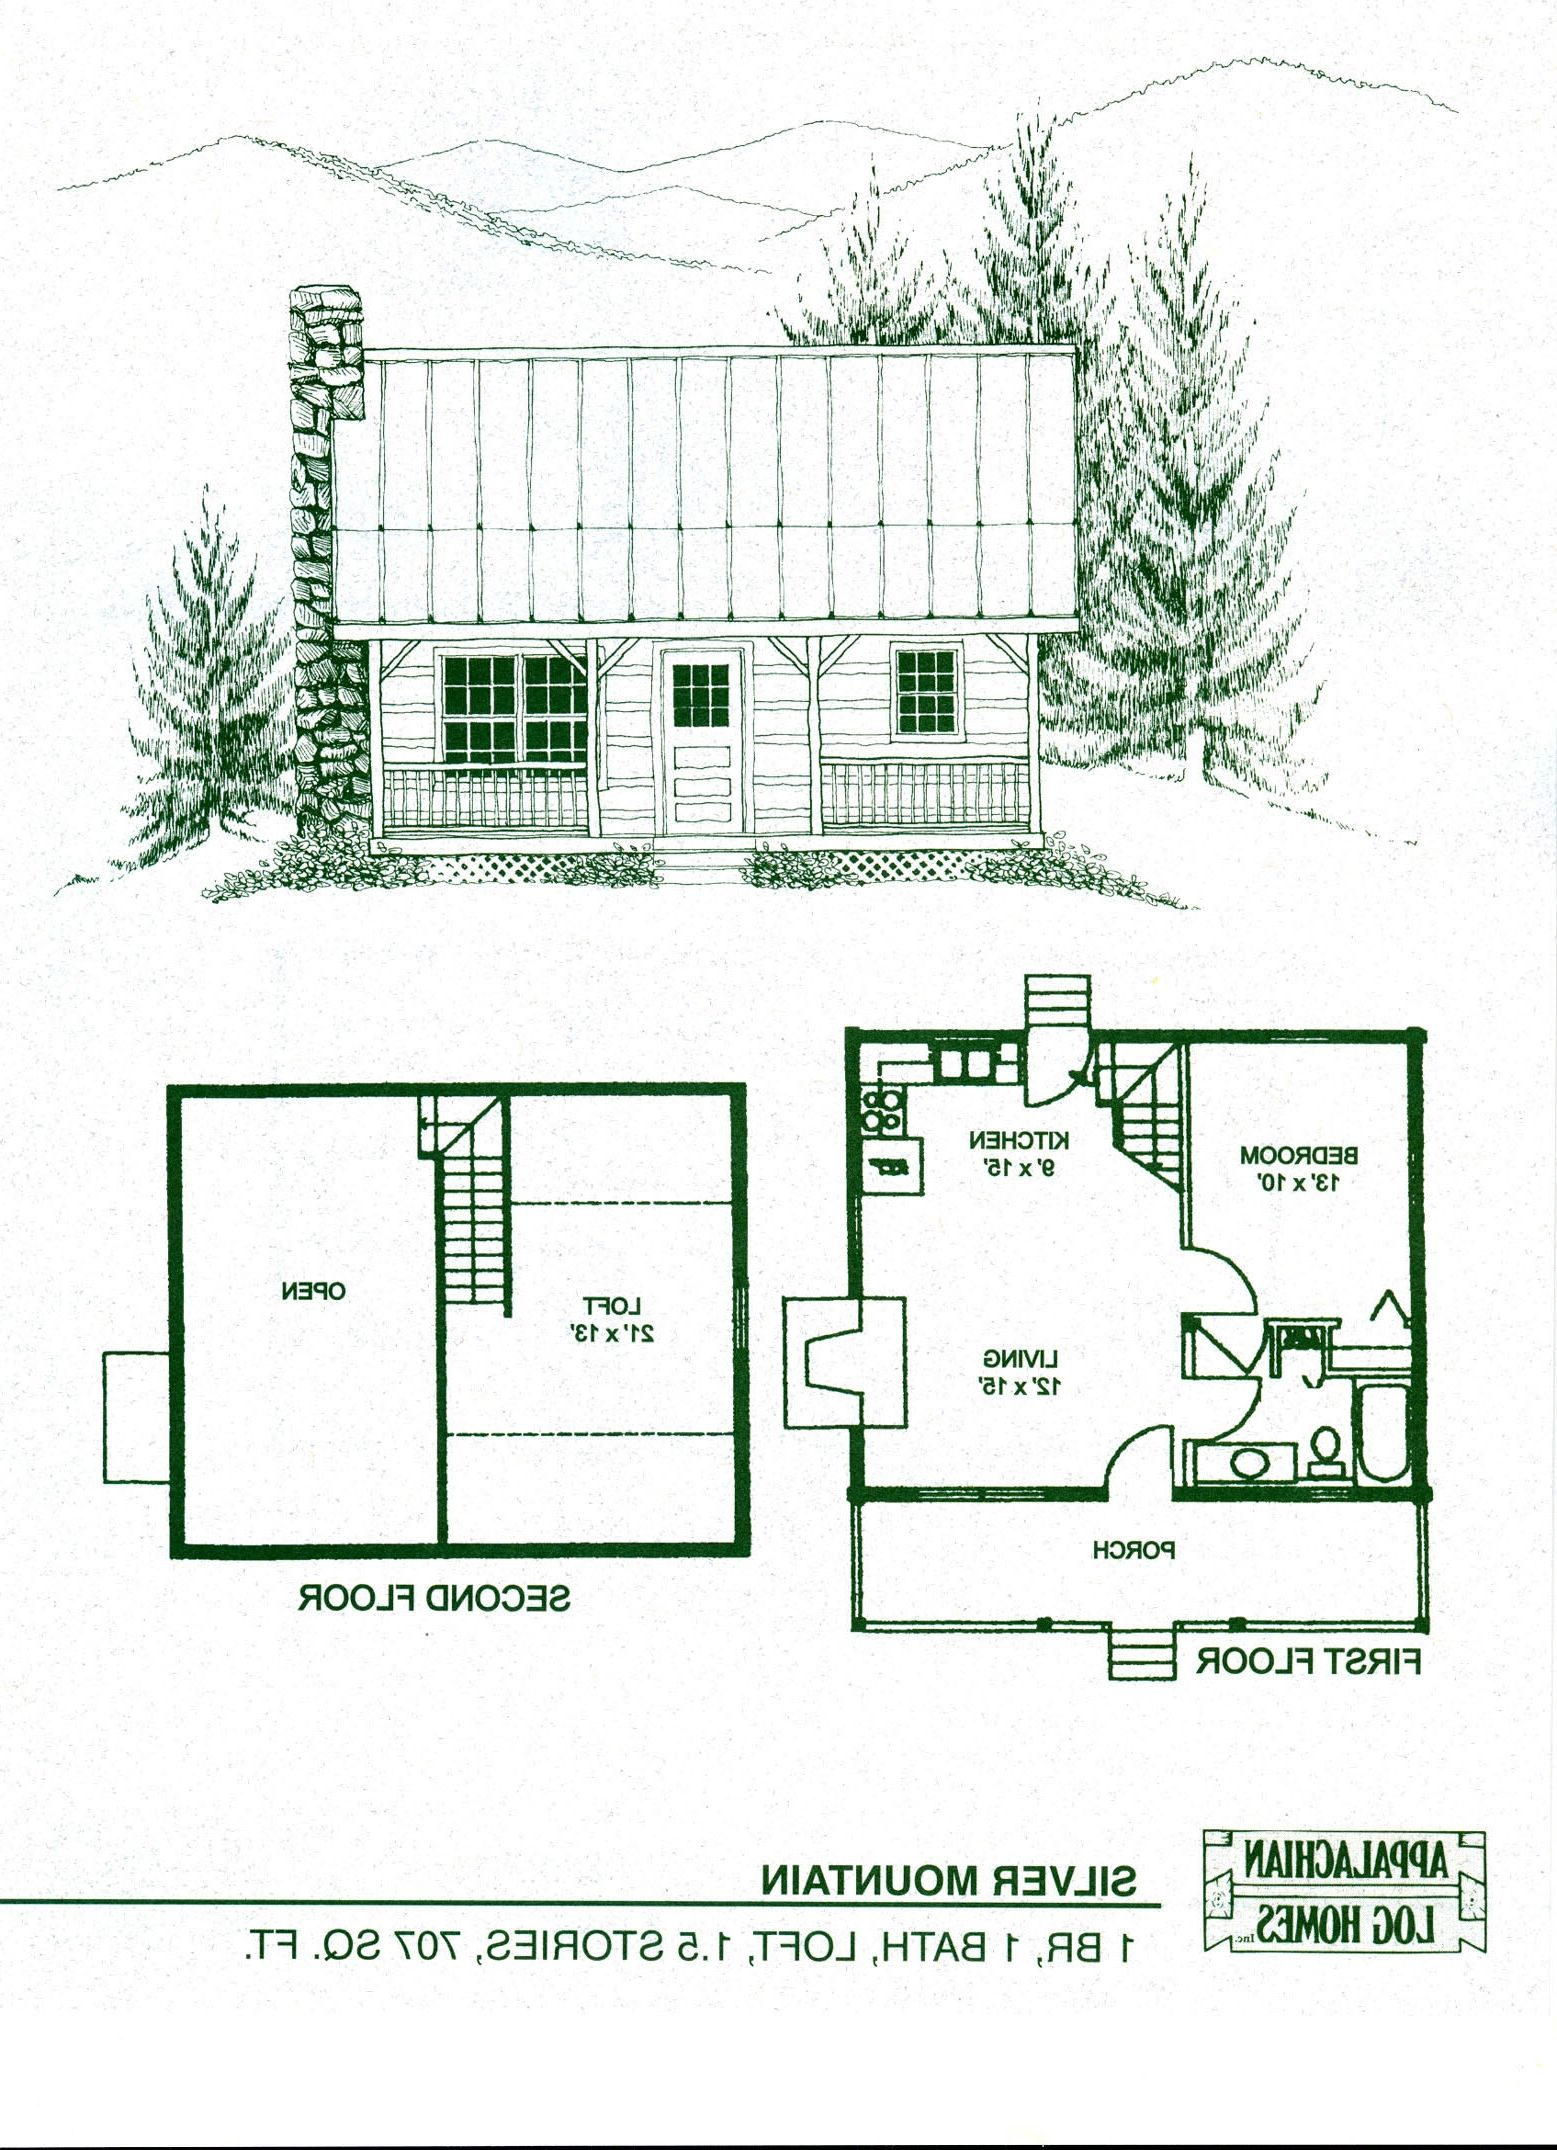 Small Cabin Plans With Loft The Best Wood Plans Small Home Floor Plans With Loft Wallpapers Houzz Sta Loft Floor Plans Cabin Plans With Loft Small Cabin Plans